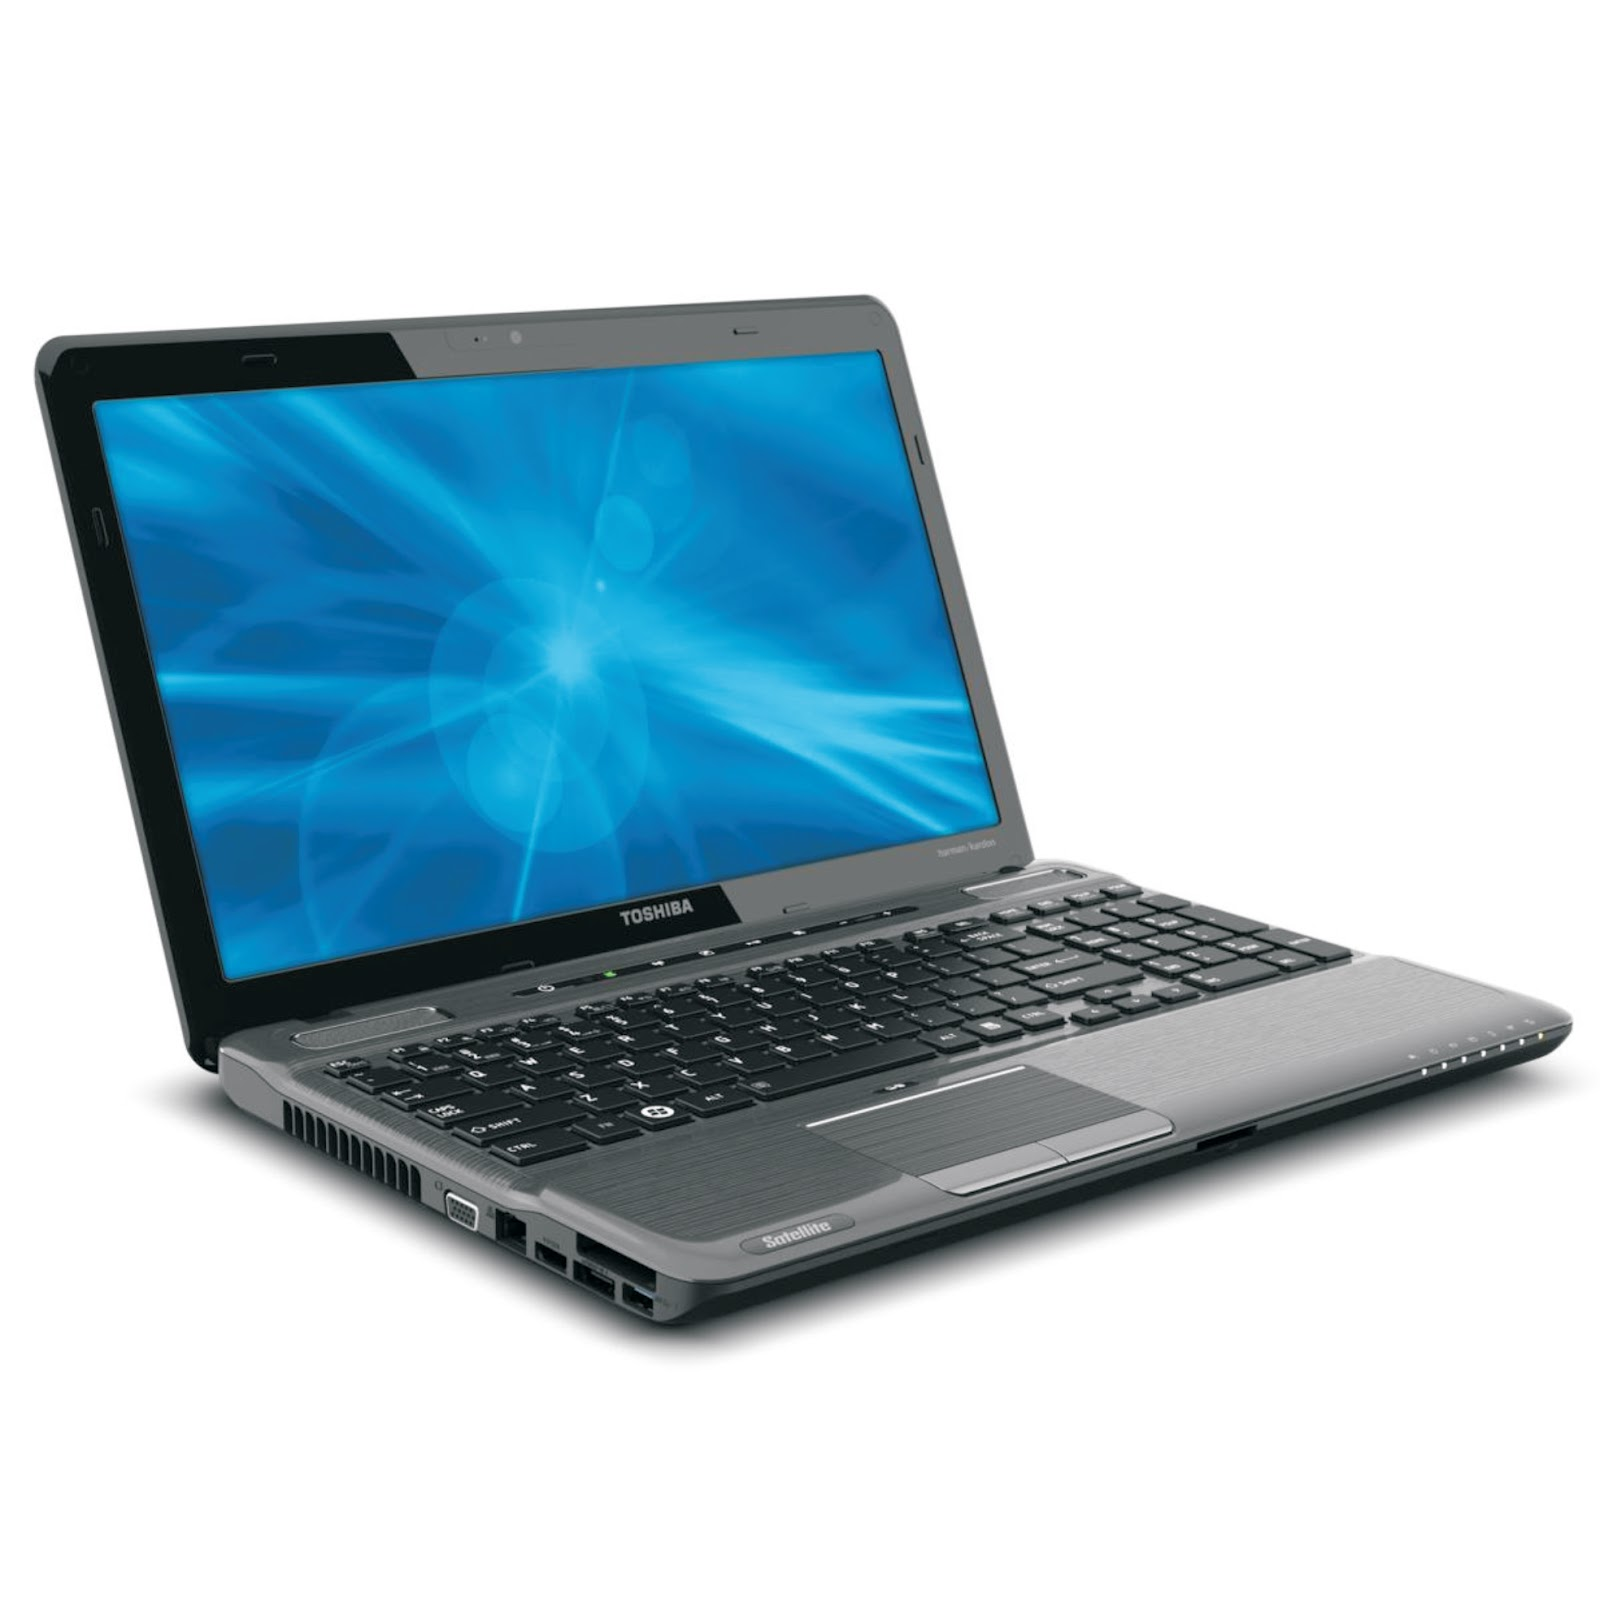 Toshiba+Satellite+P755-S5274+15.6-Inch+LED+Laptop+Computer+(Black).jpg